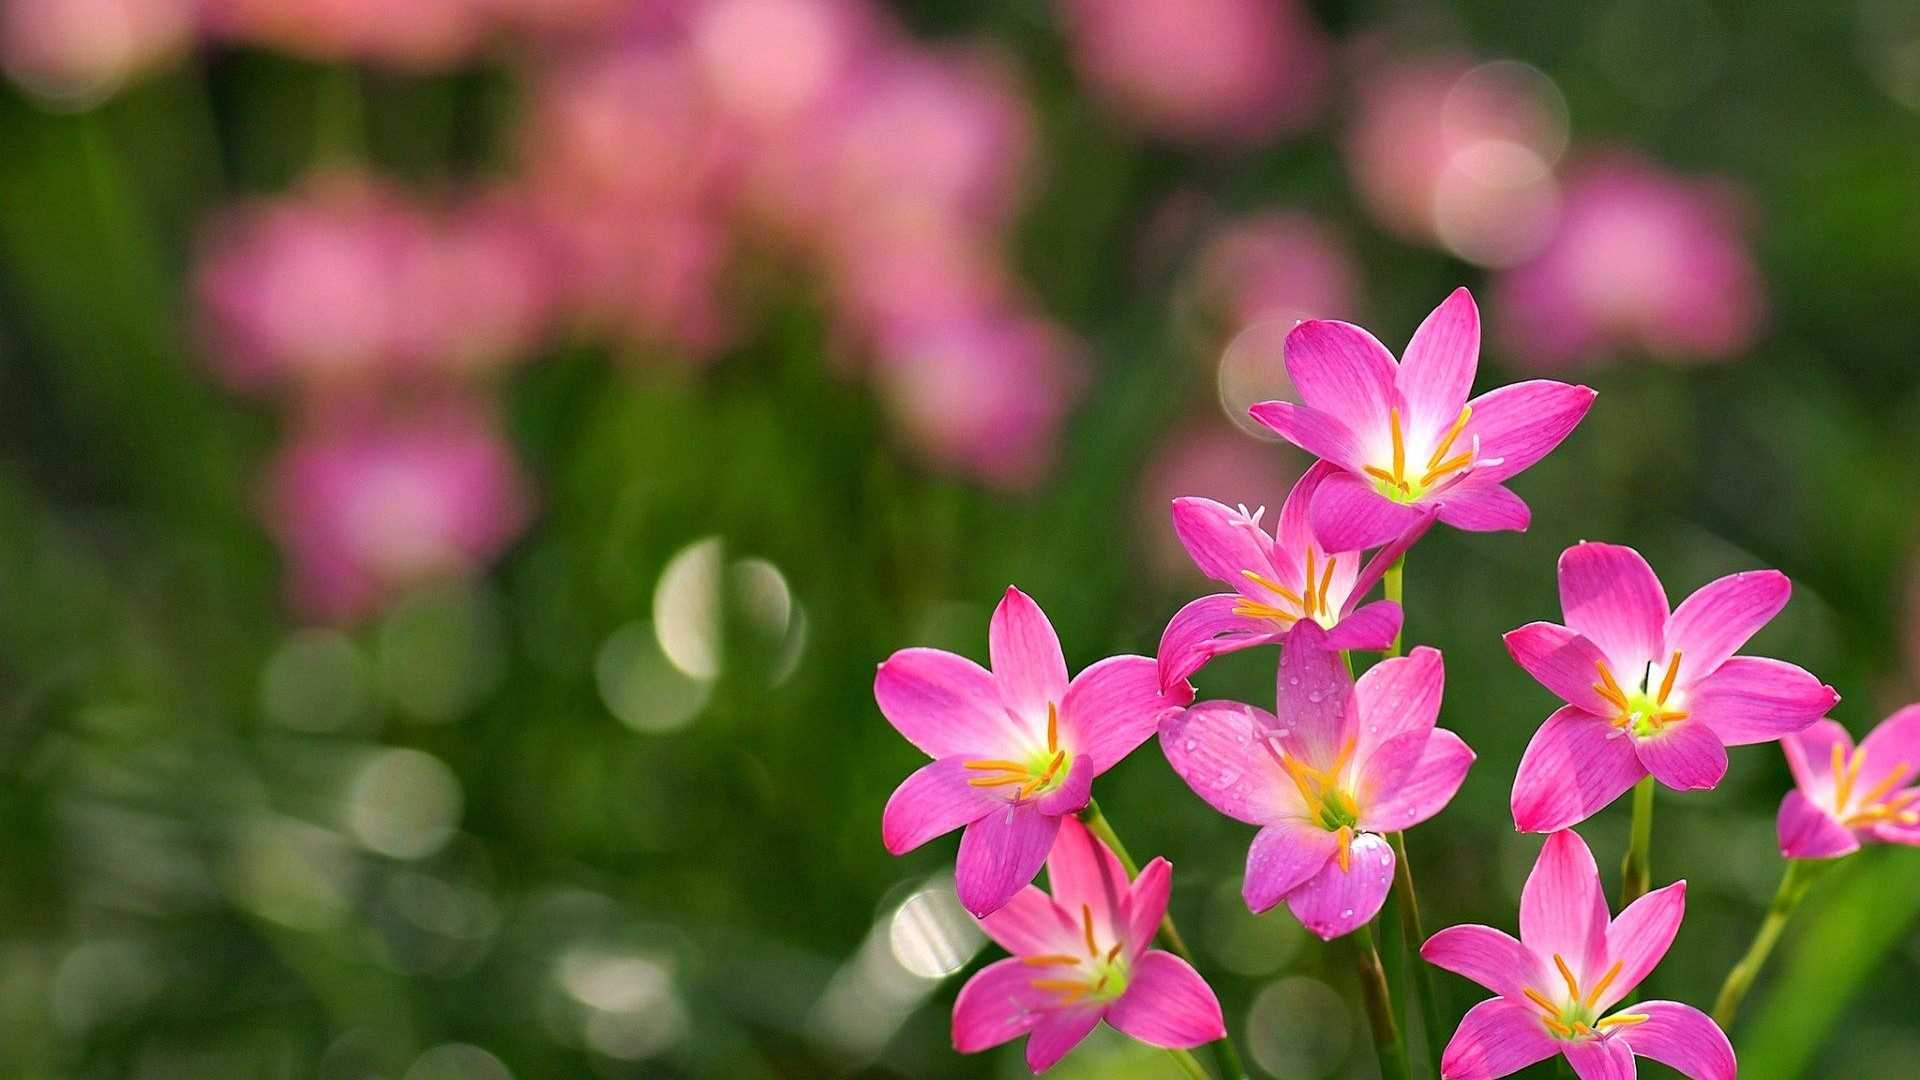 World S Top 100 Beautiful Flowers Images Wallpaper Bisognerebbe Essere Come I Fiori 846887 Hd Wallpaper Backgrounds Download